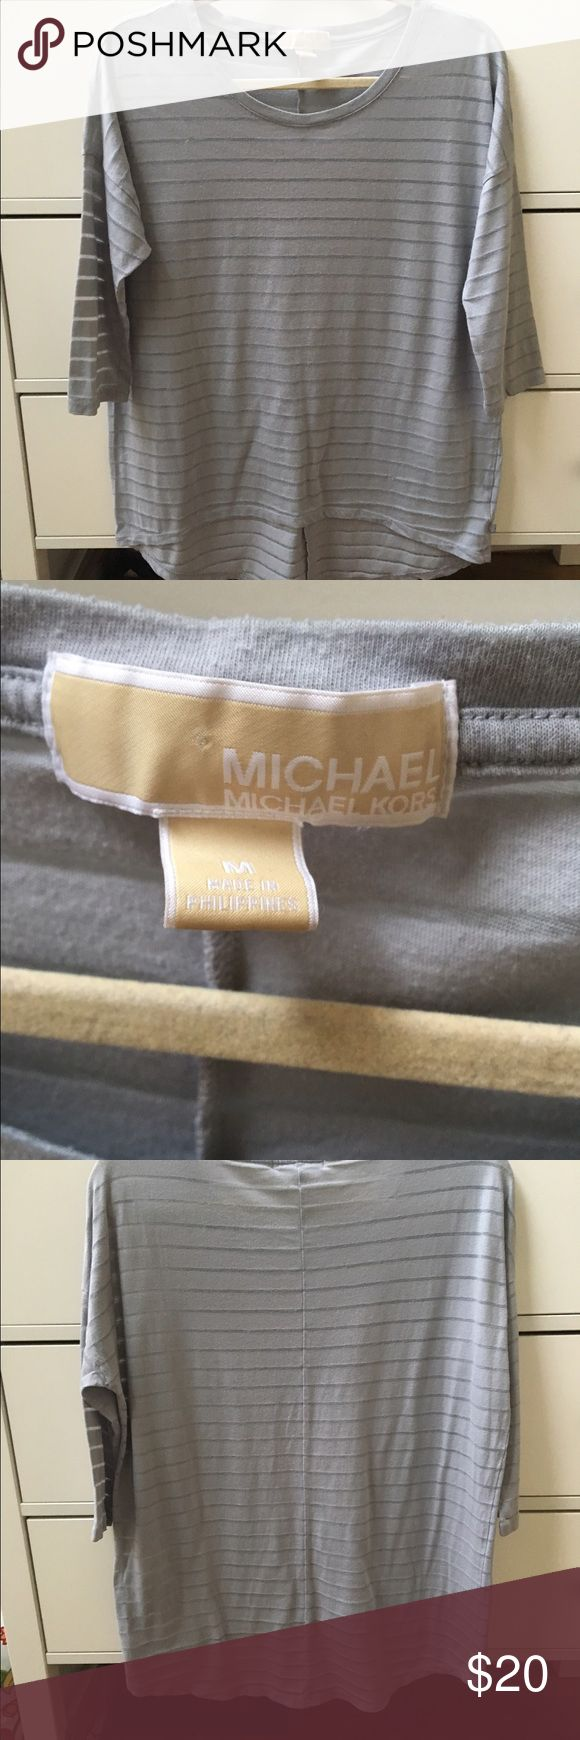 Michael kors tshirt 3/4 sleeves. Sheer. Light gray  high low effect. Great condition MICHAEL Michael Kors Tops Tees - Long Sleeve